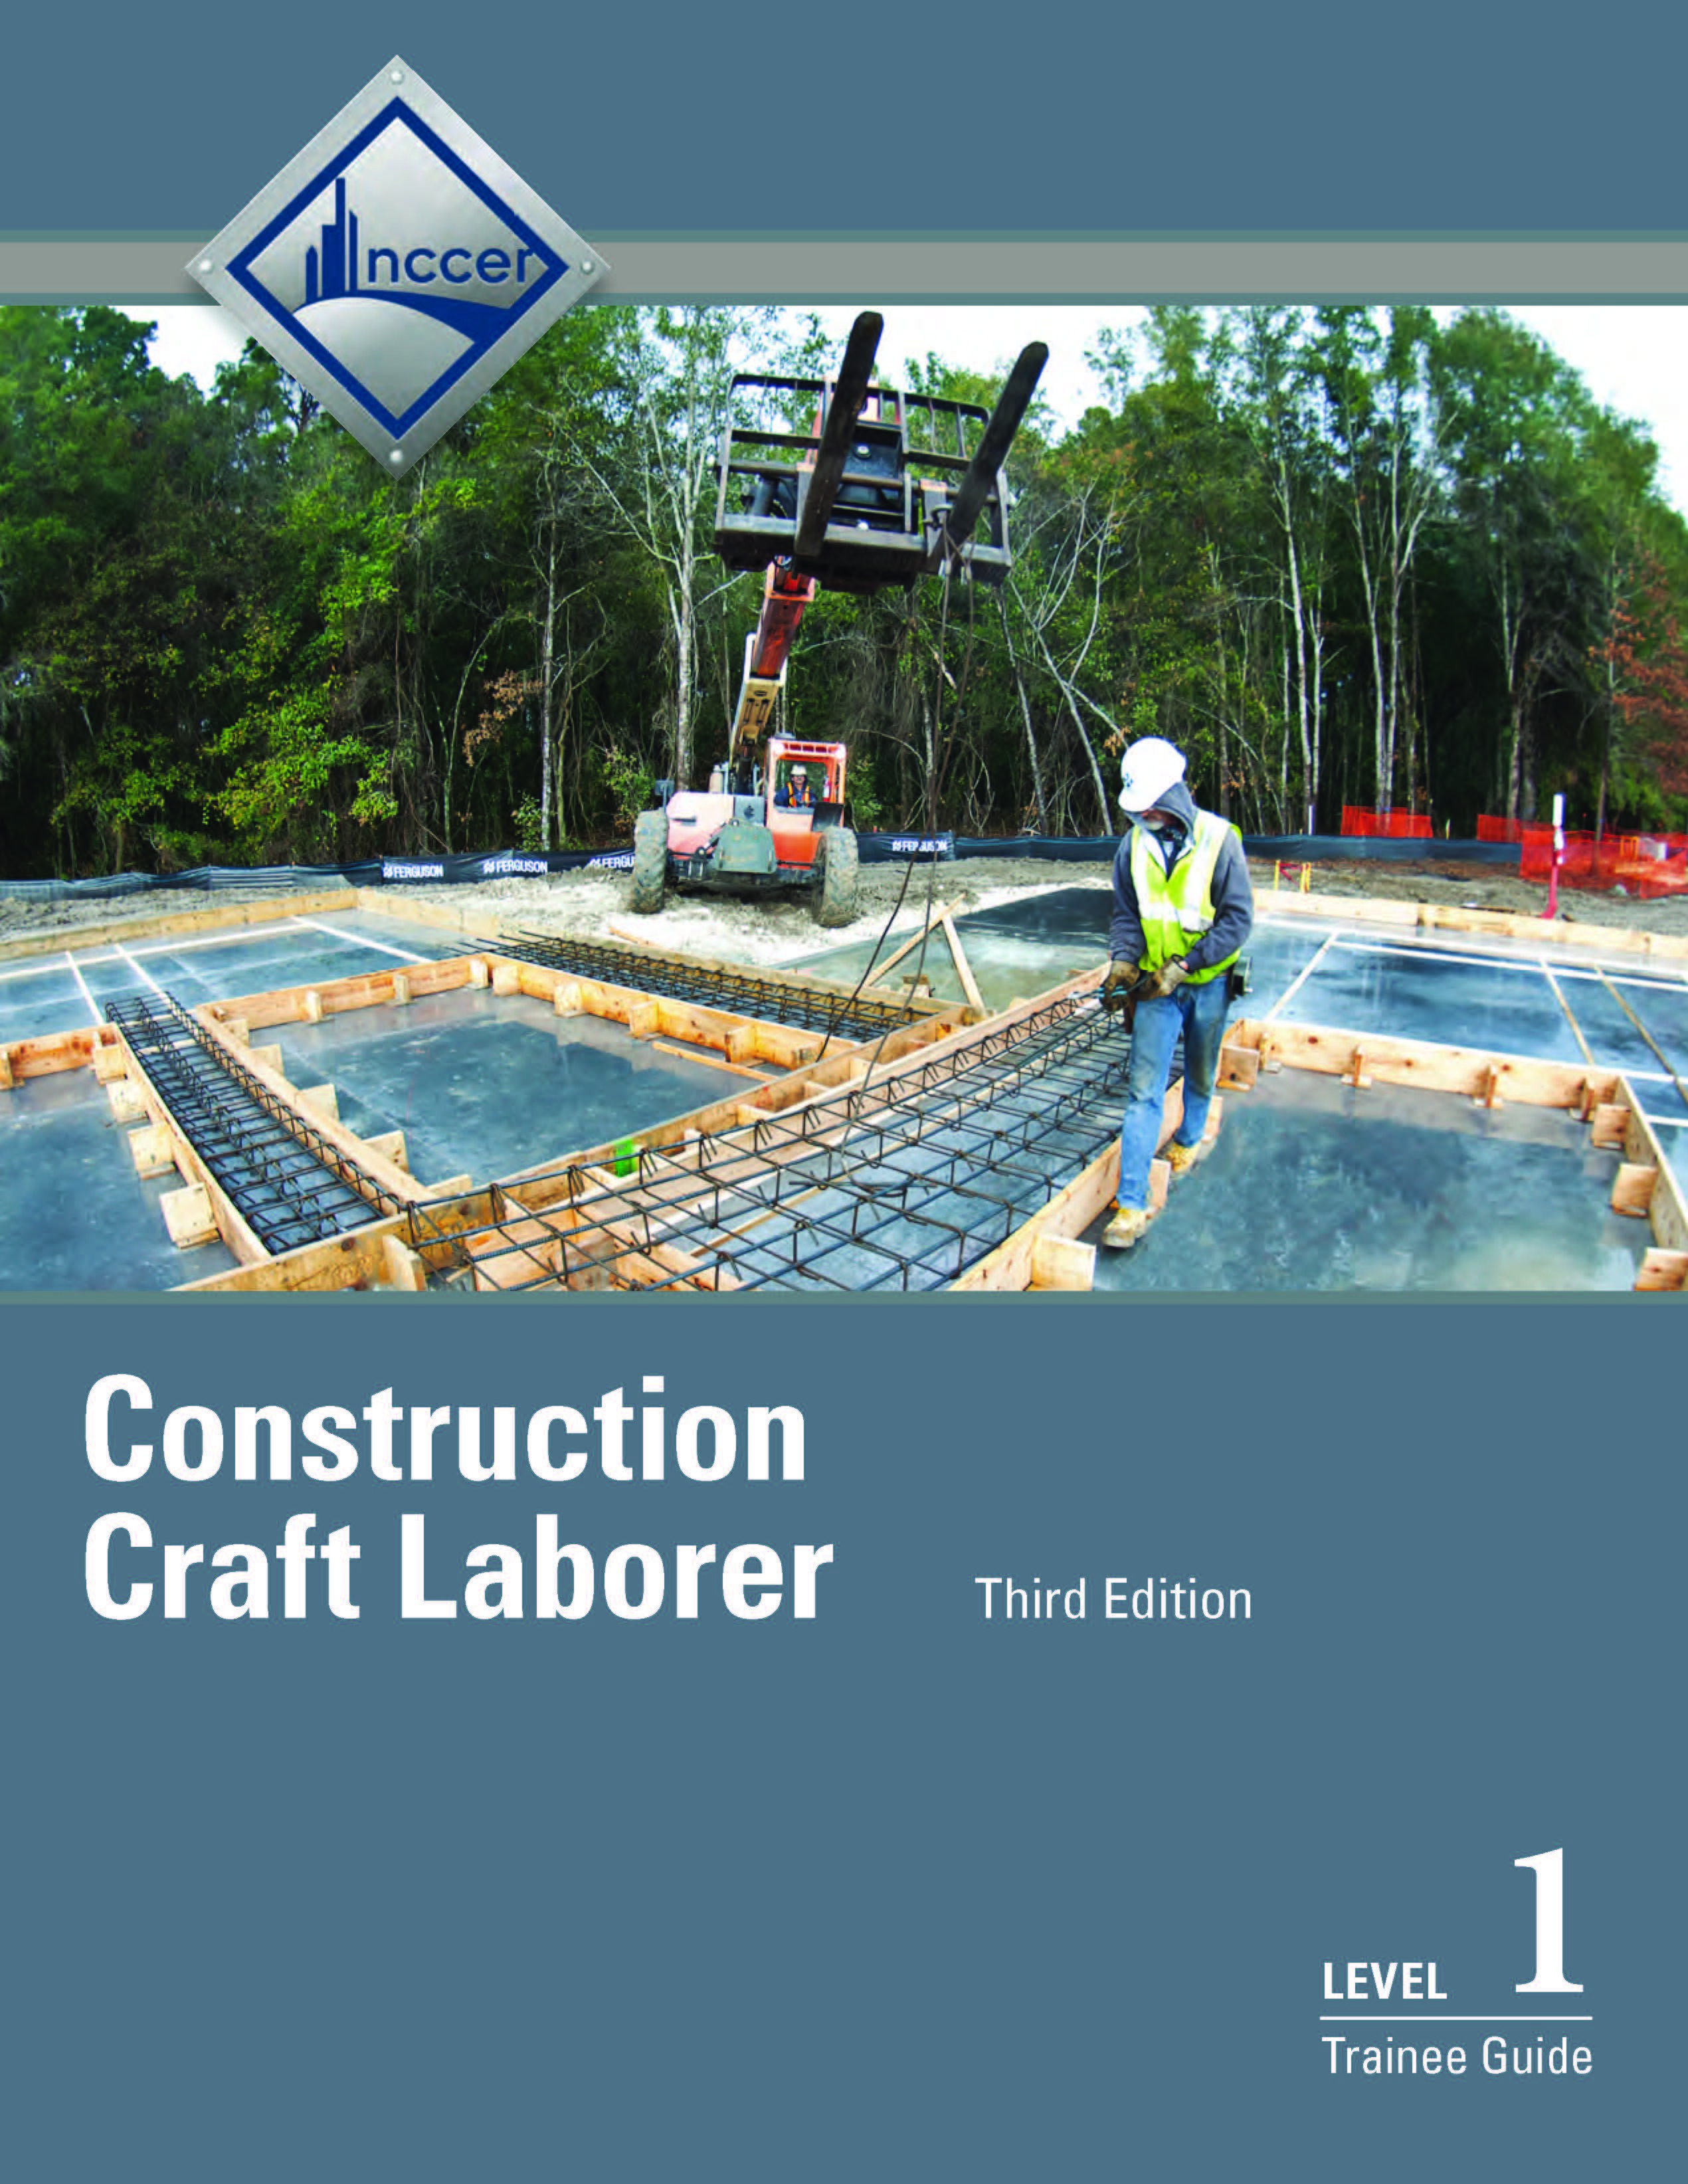 Construction Craft Laborer Level 1